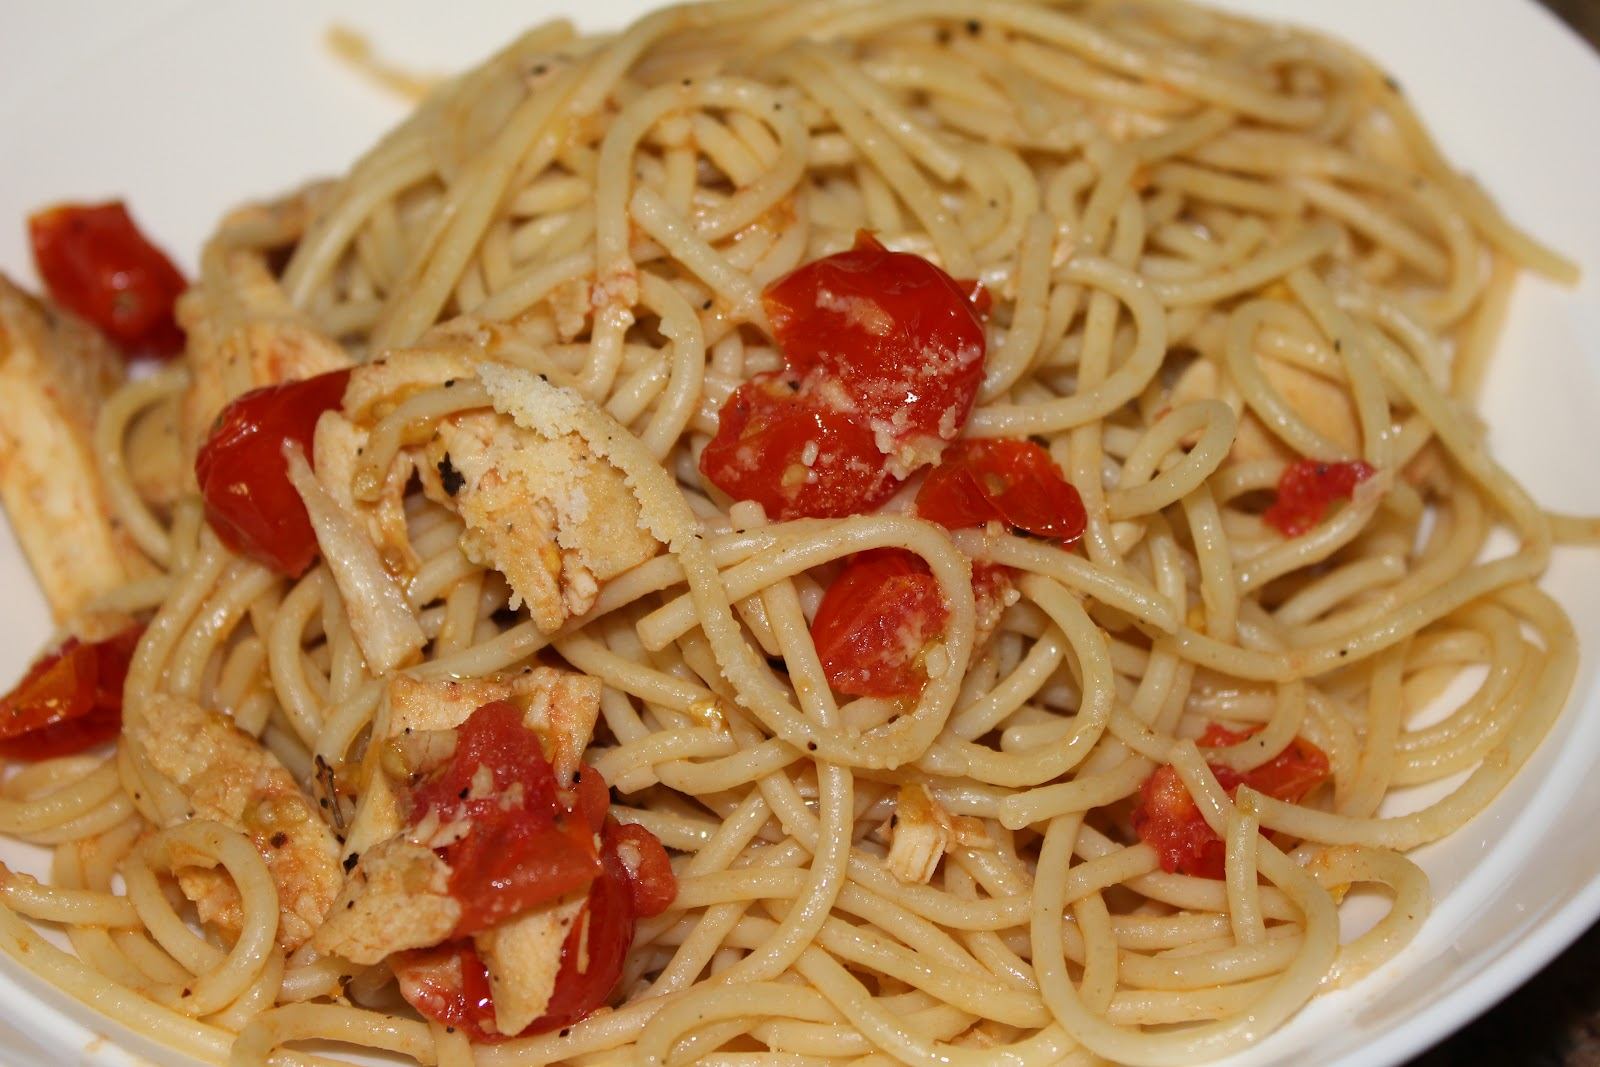 ... made with love: Spaghetti with Sauteed Chicken and Grape Tomatoes